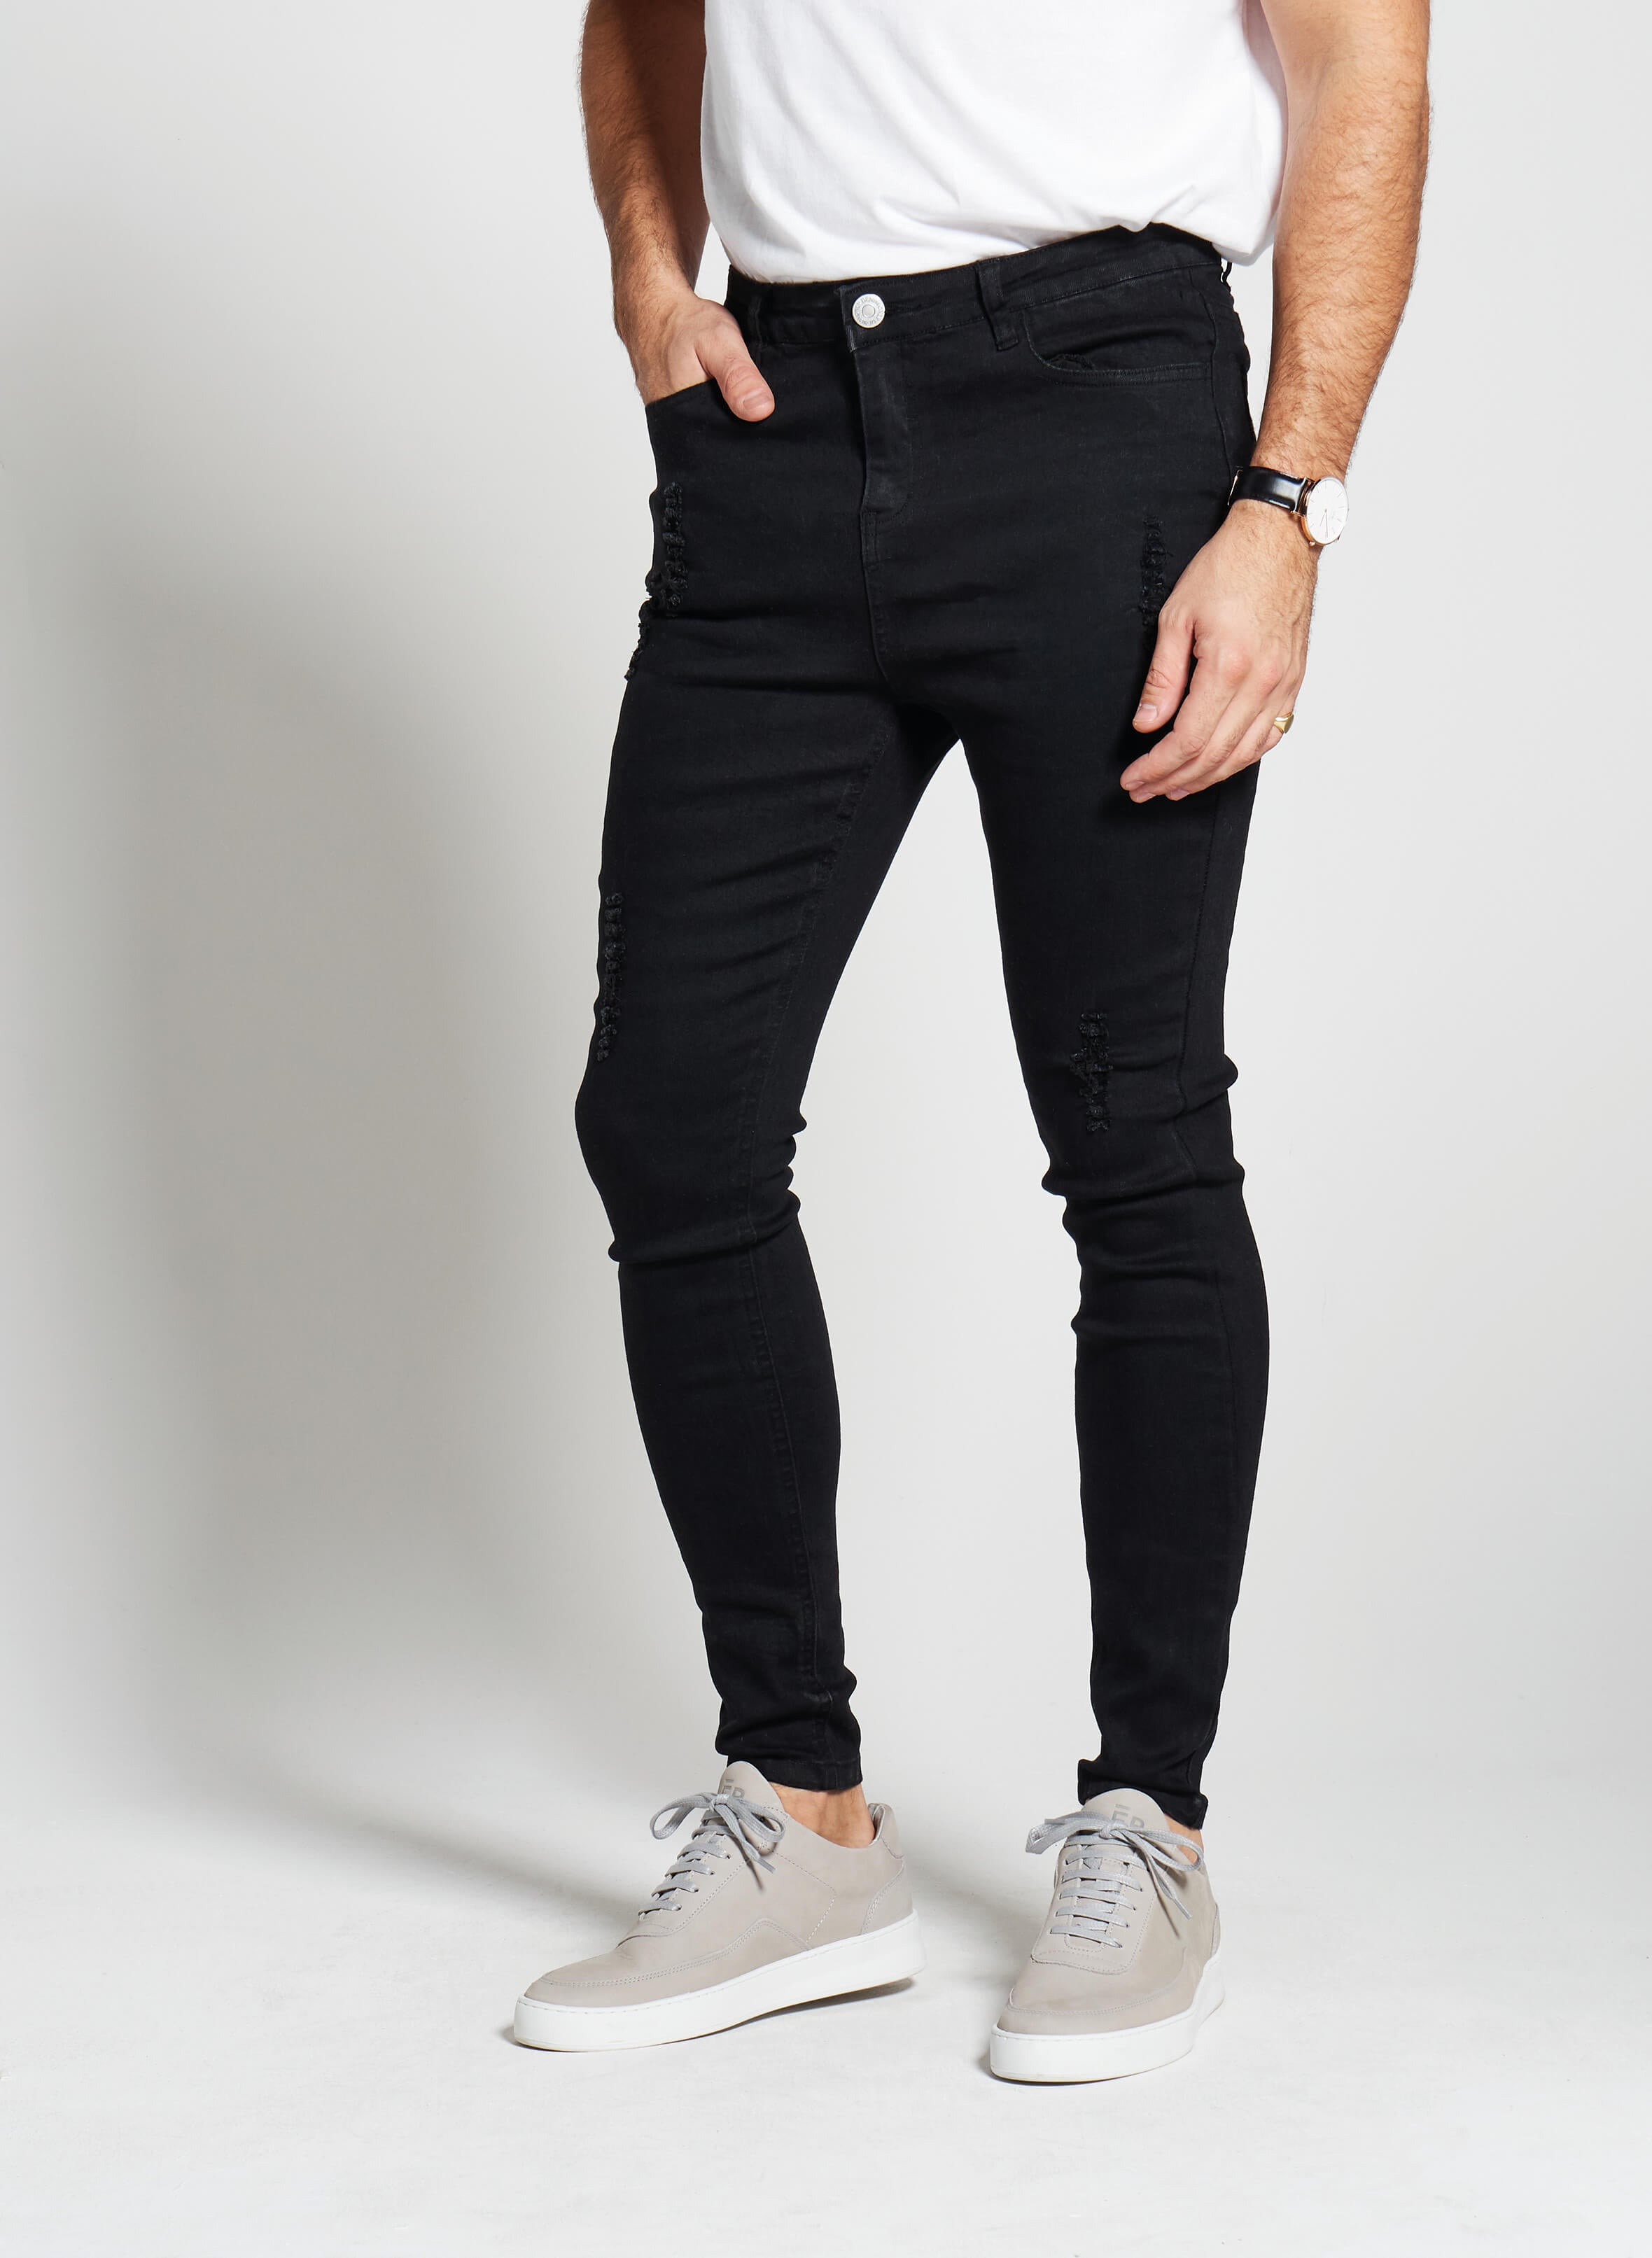 Denim Only® Spray On Jeans - Distressed Black